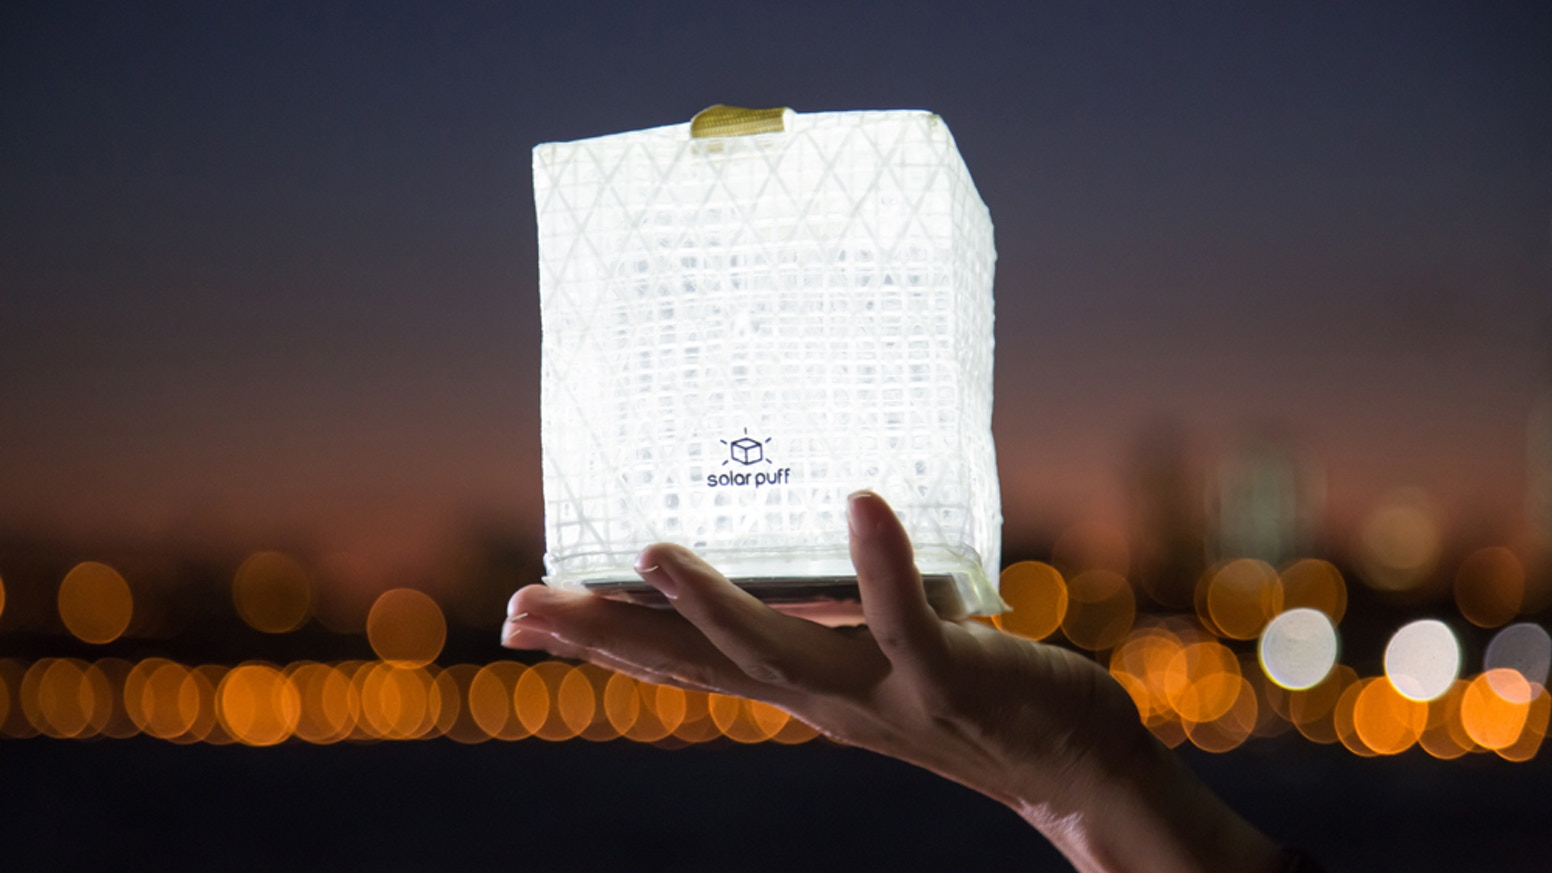 Solarpuff is a little lantern with a HUGE impact. It is a patent pending solar powered lantern that packs flat and easily pops open. Thank you Kickstarters!You can get our light share the light and send light by going to our website www.solight-design.com